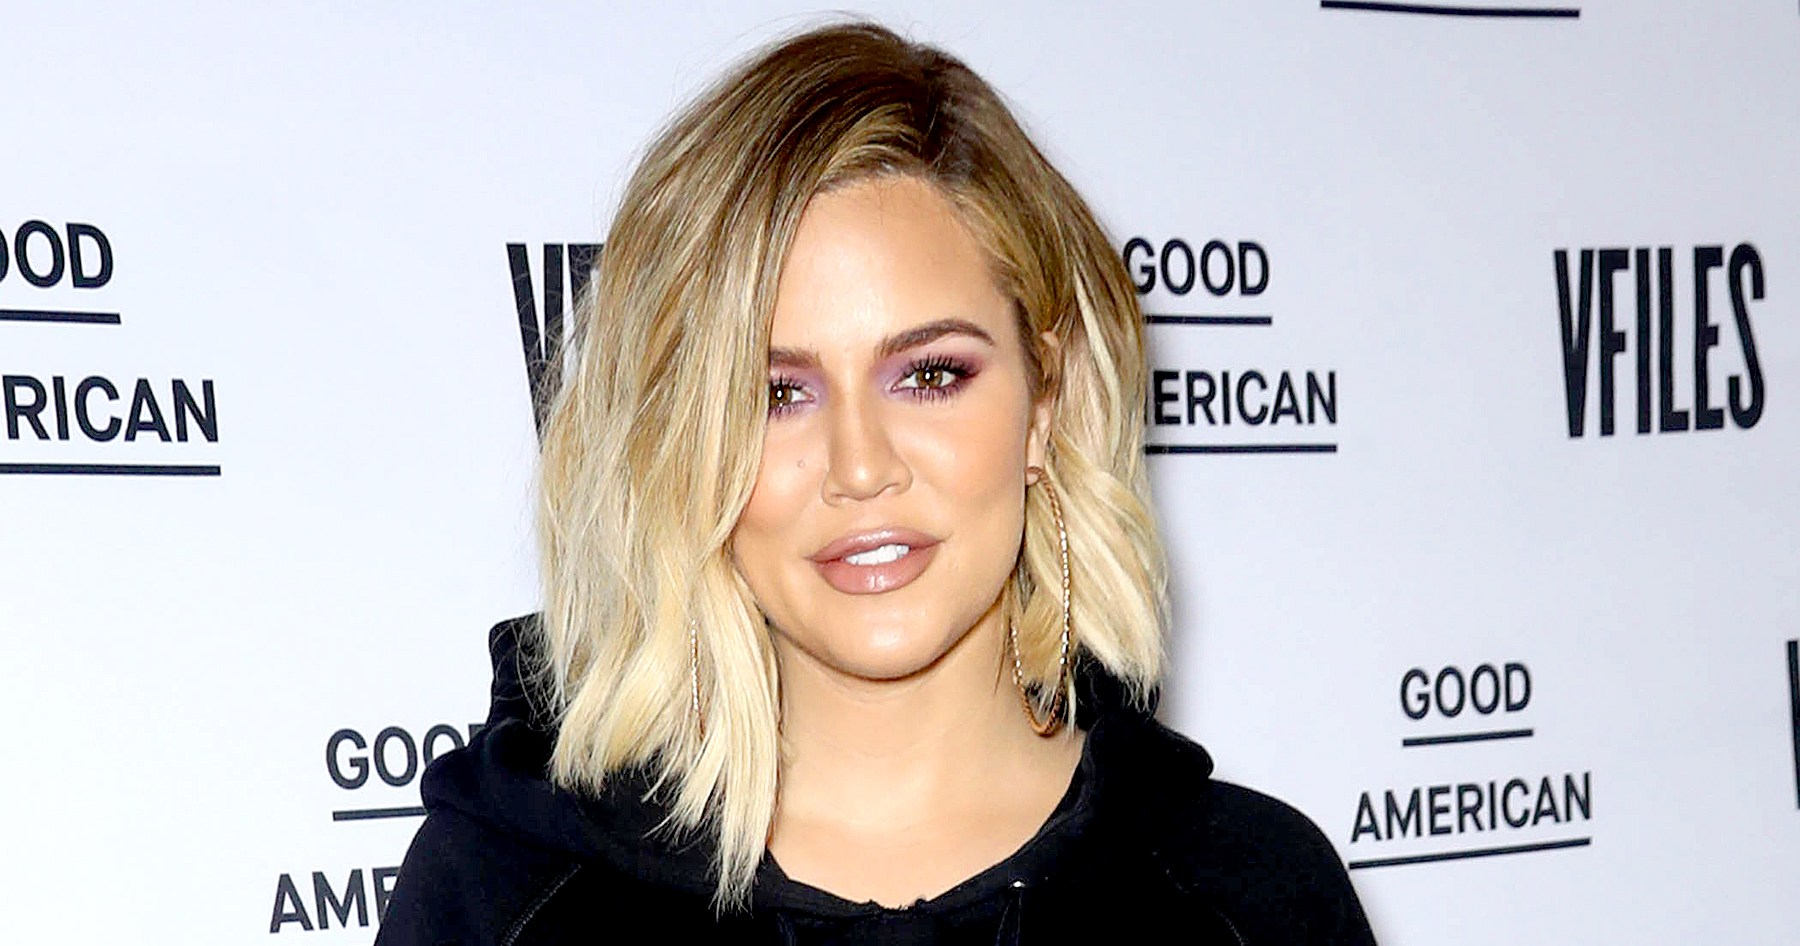 Khloe Kardashian Shares Message About Being 'Patient Long Enough'